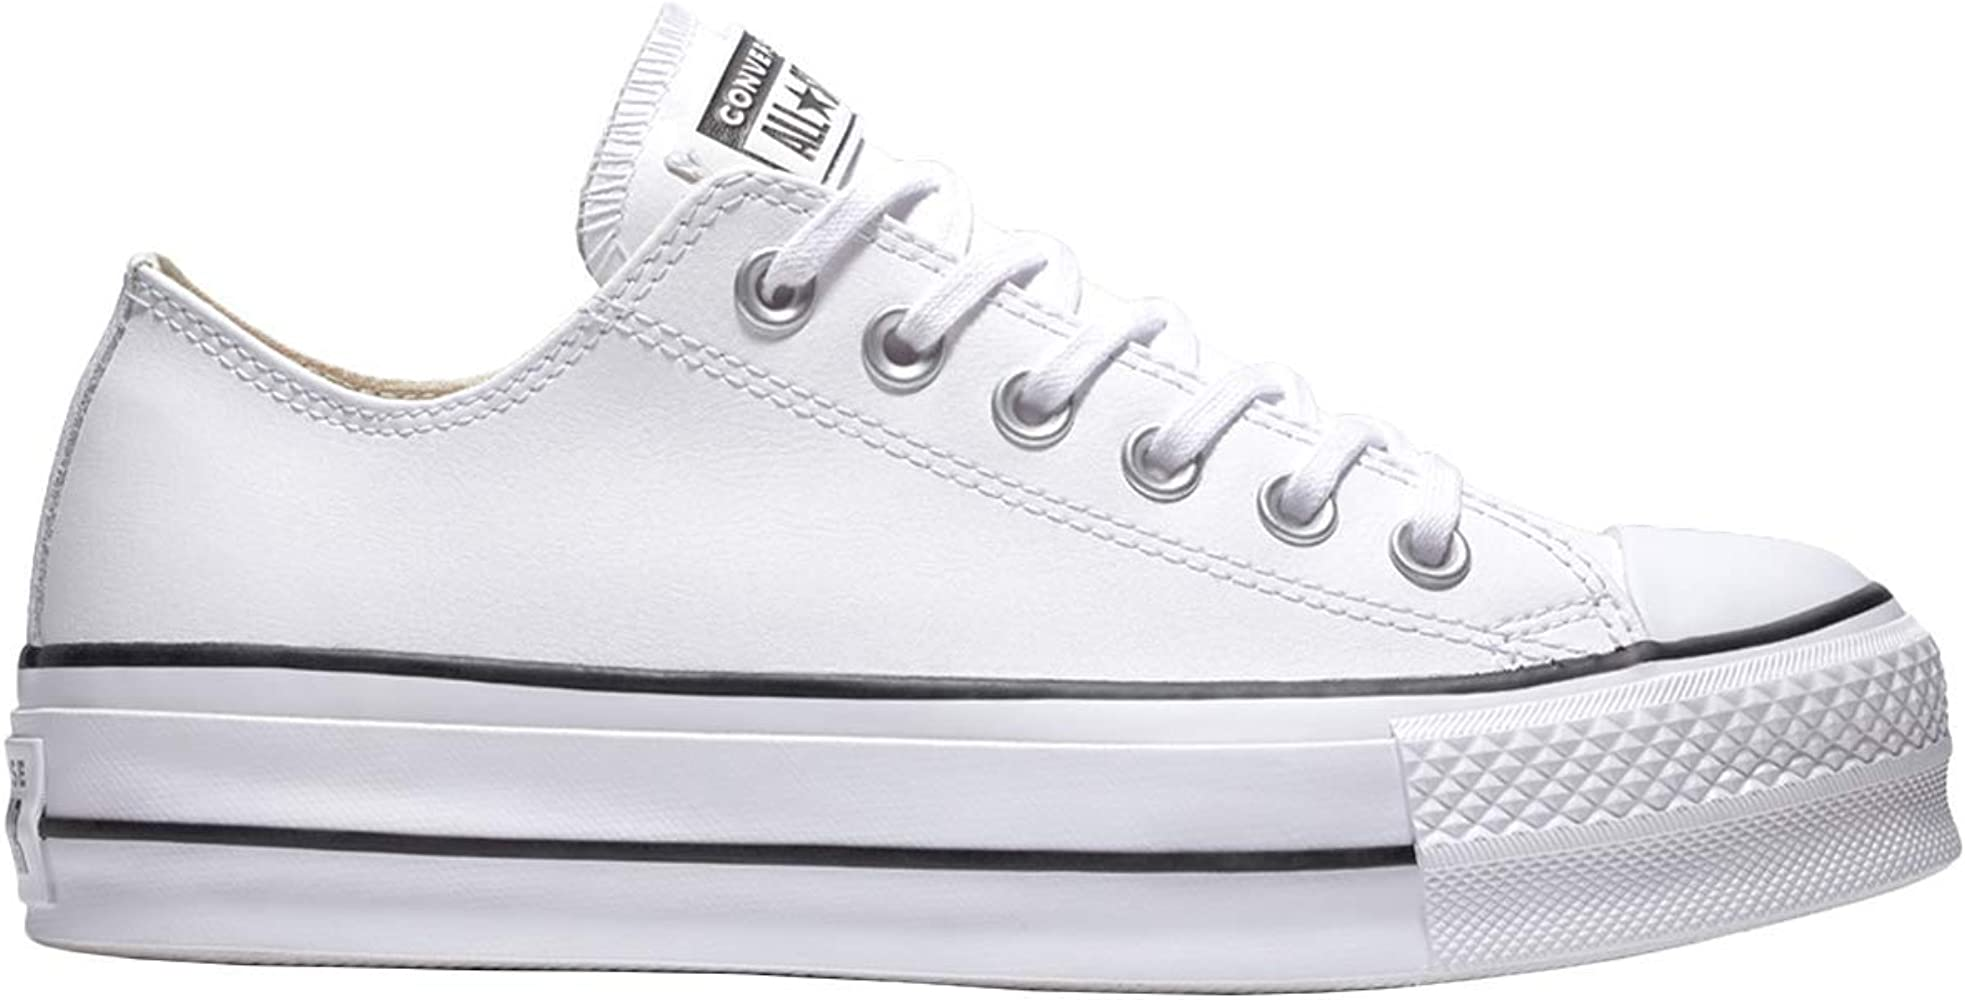 converse lift blanche